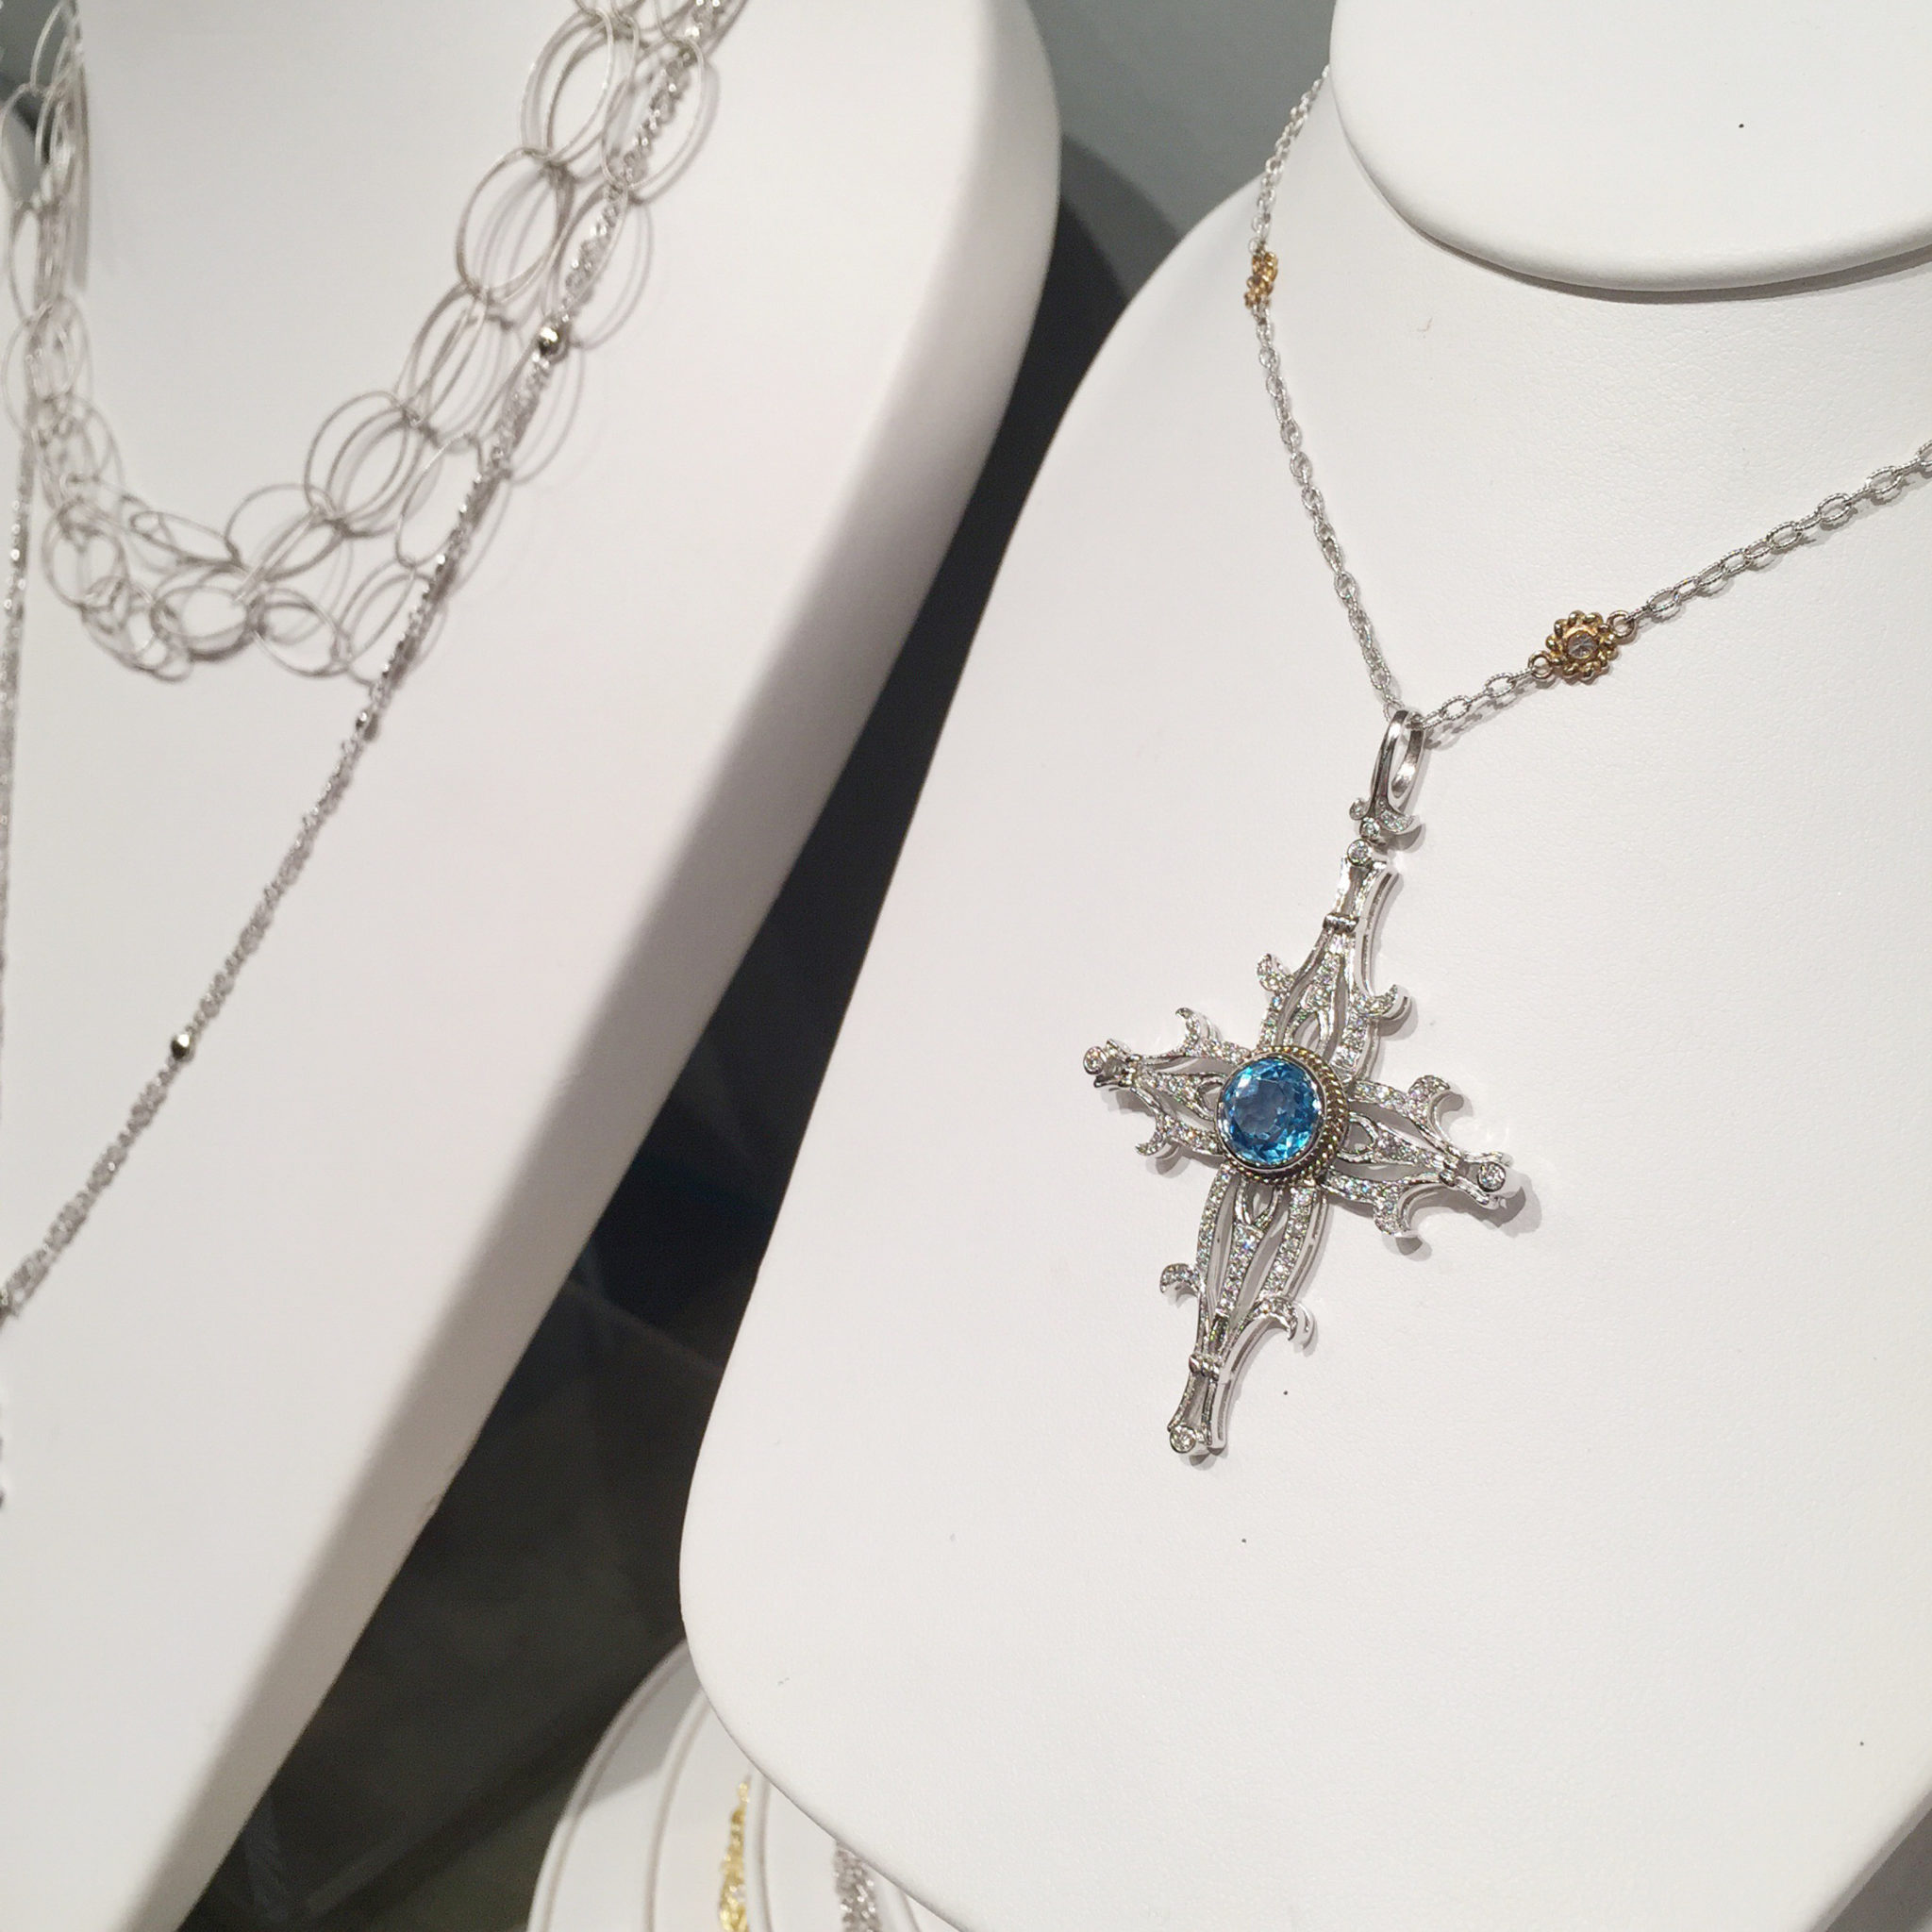 Designer Jewelry DePriest Robbins Eli Jewels Huntsville Alabama Cross